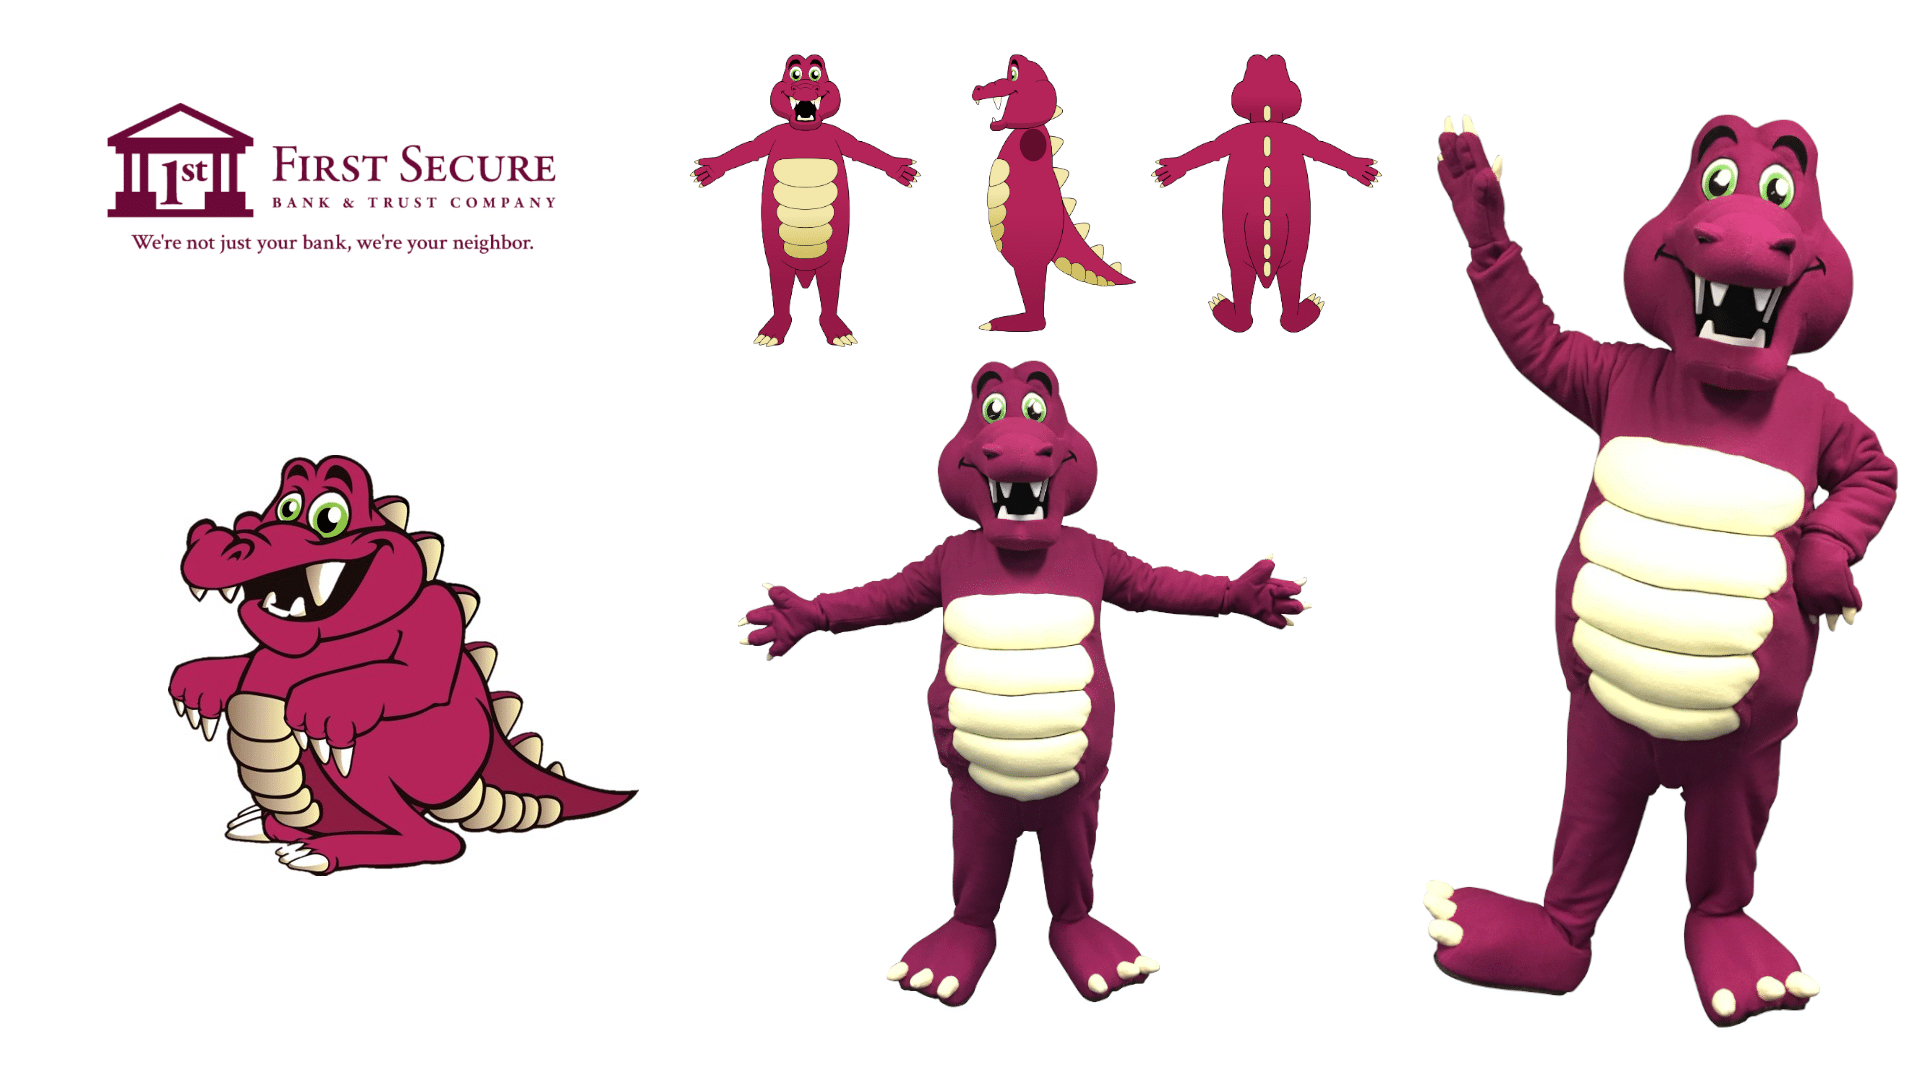 Custom-Mascot-Costume-Monster-First-Secure-Bank-by-Promo-Bears